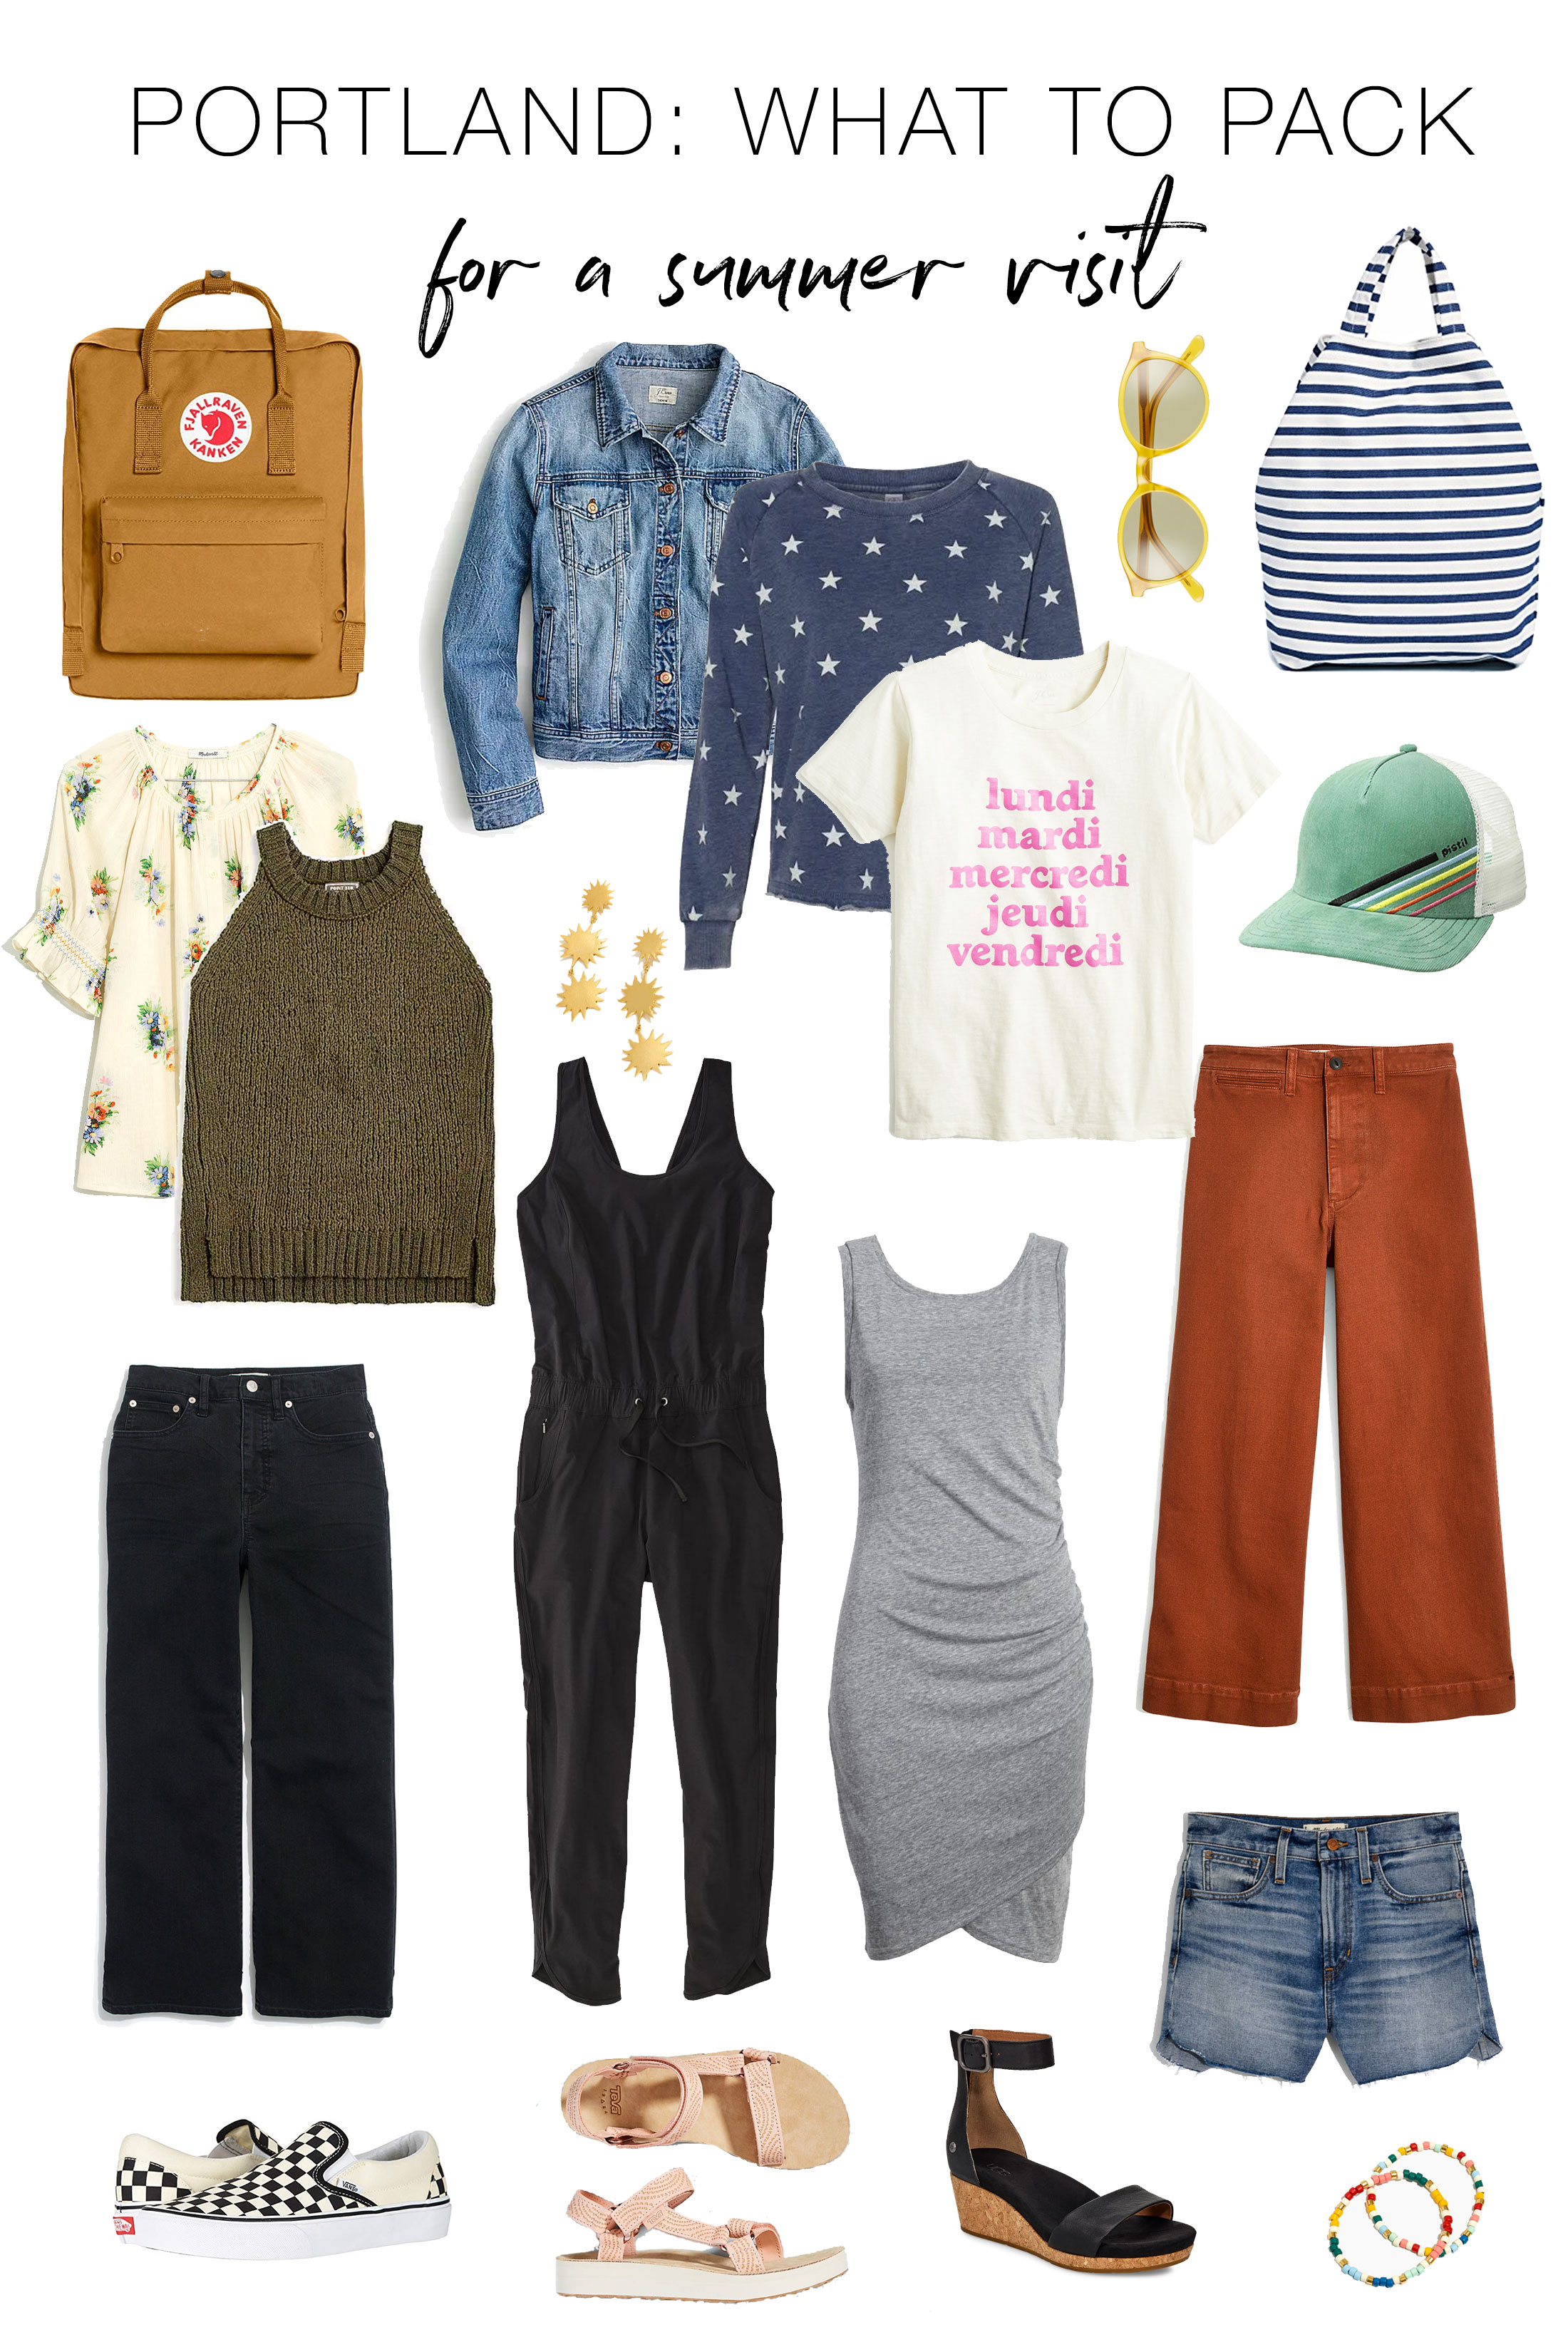 Ah, yes! Vacay in the Pacific Northwest this summer...so good! TME created this Portland packing list just for you —check out this travel capsule wardrobe.